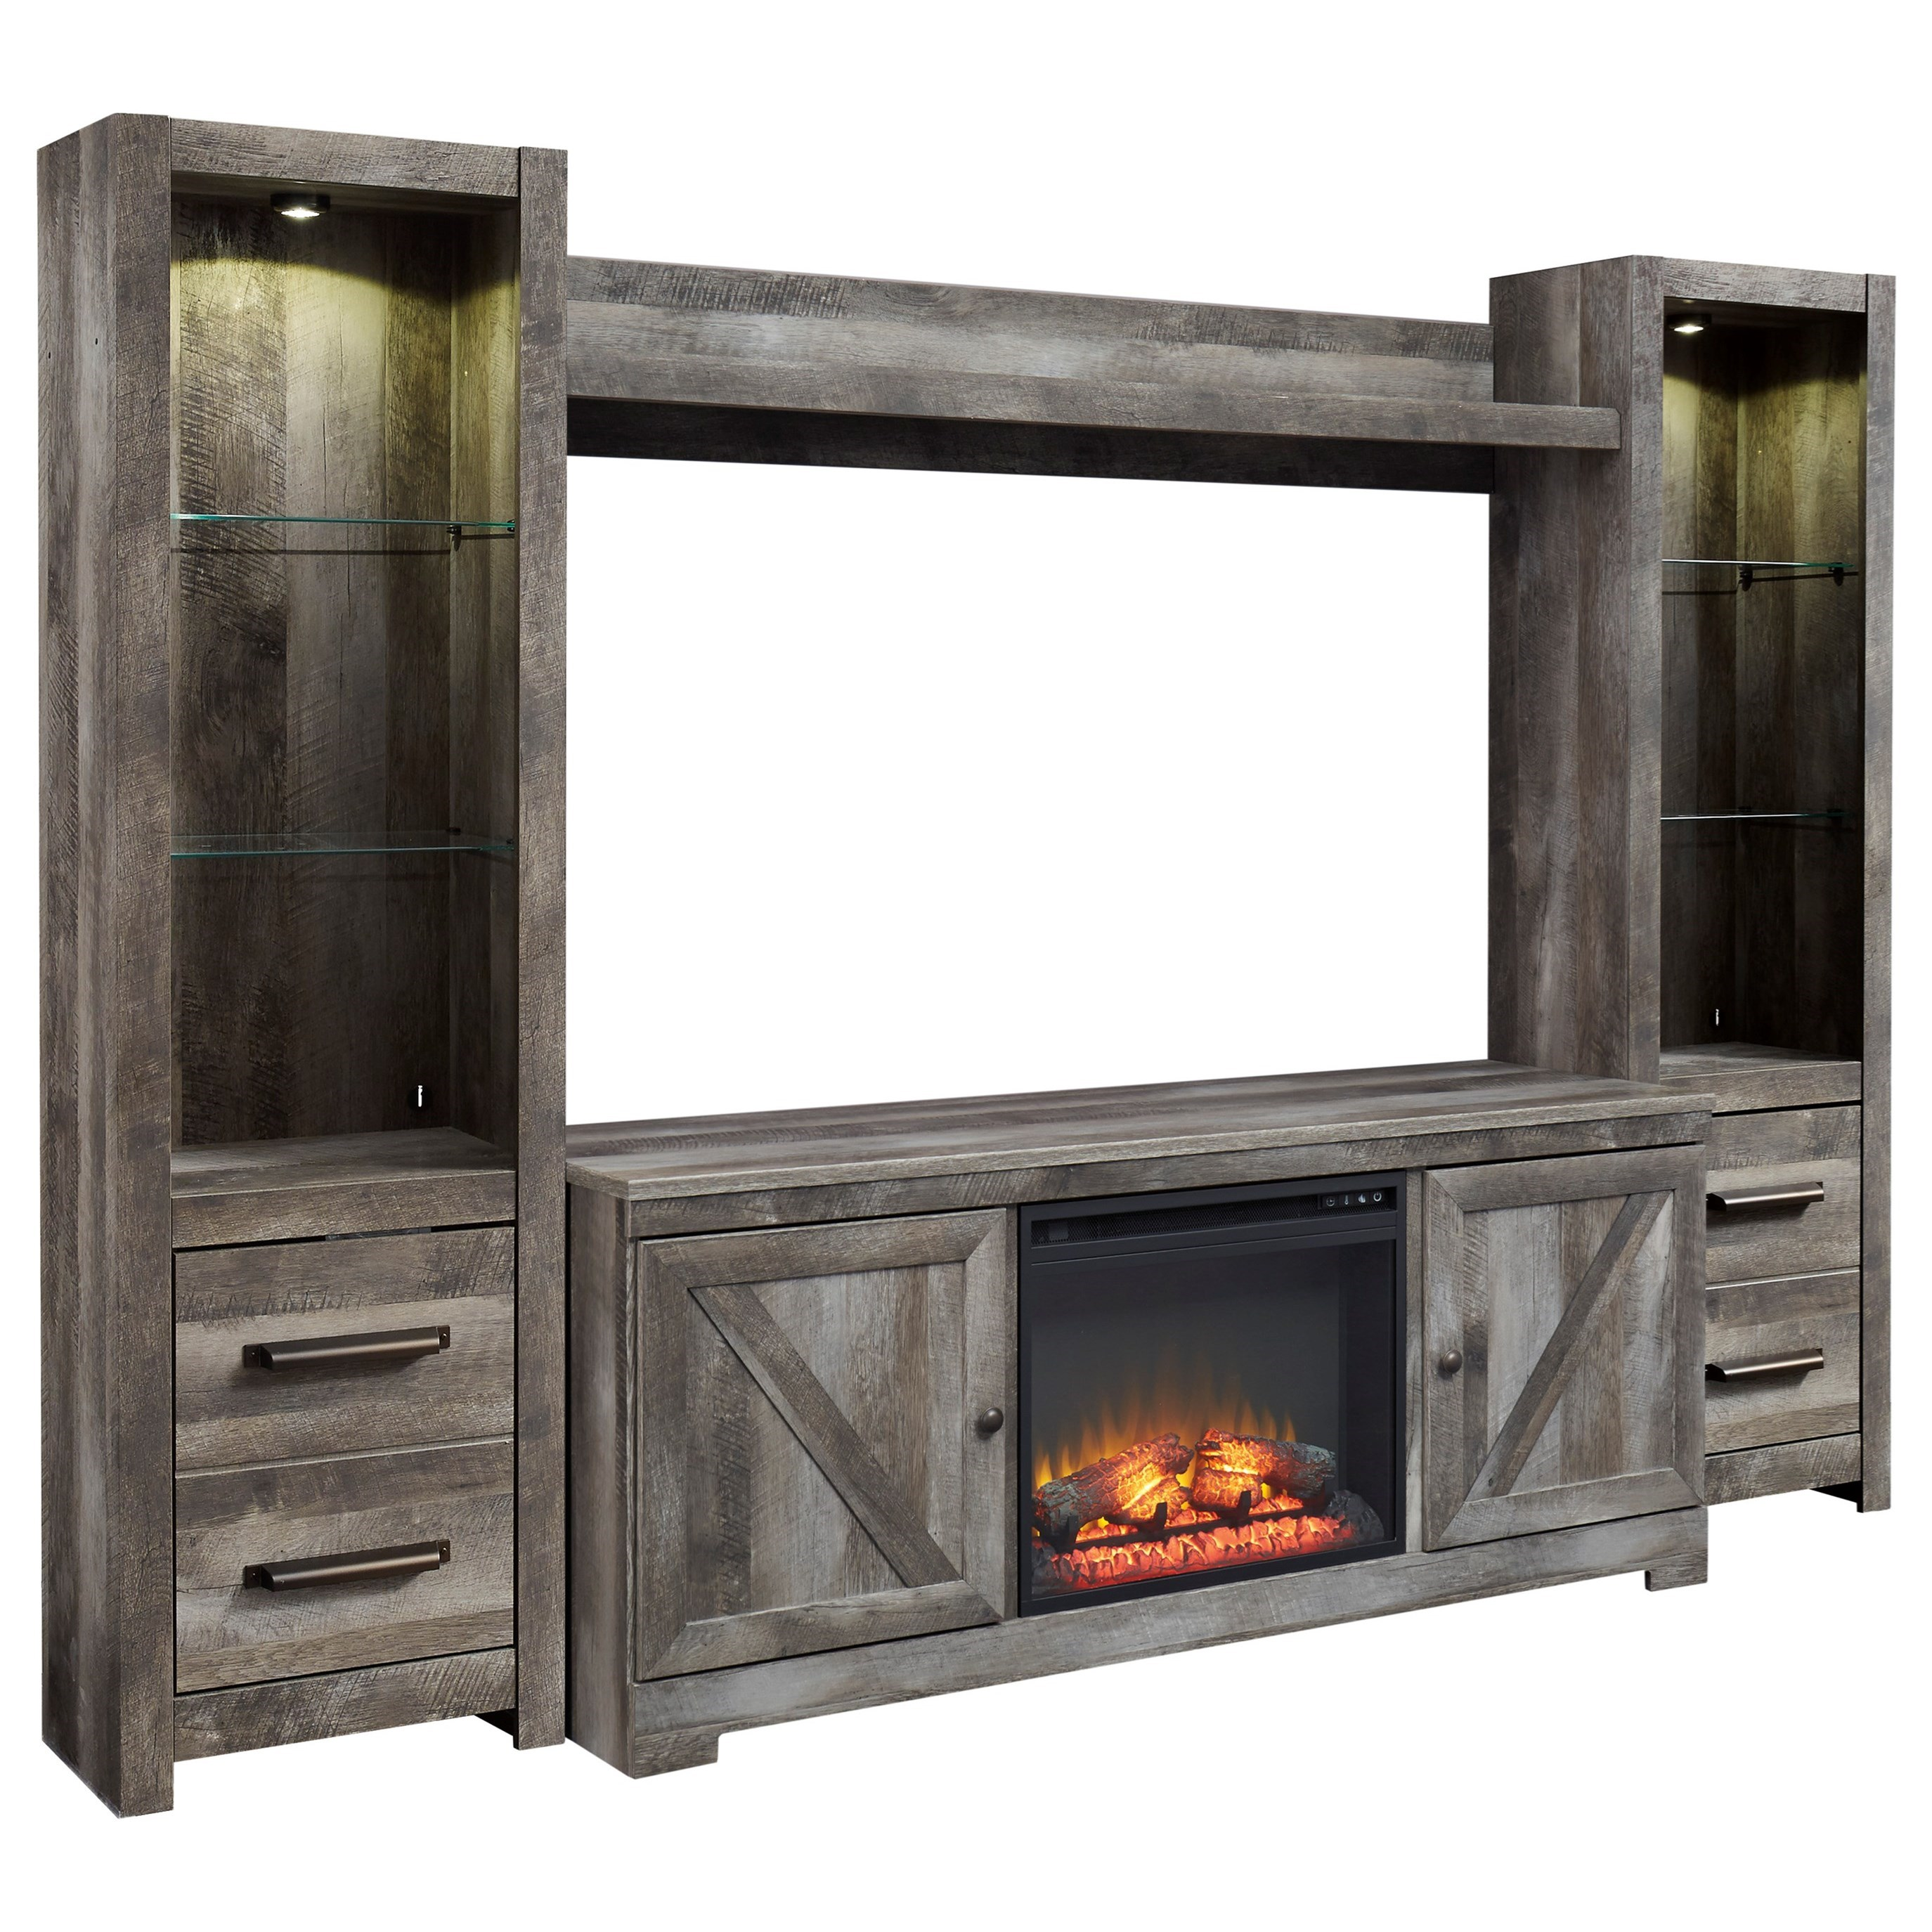 Wynnlow Wall Unit with Fireplace by Signature Design by Ashley at Smart Buy Furniture